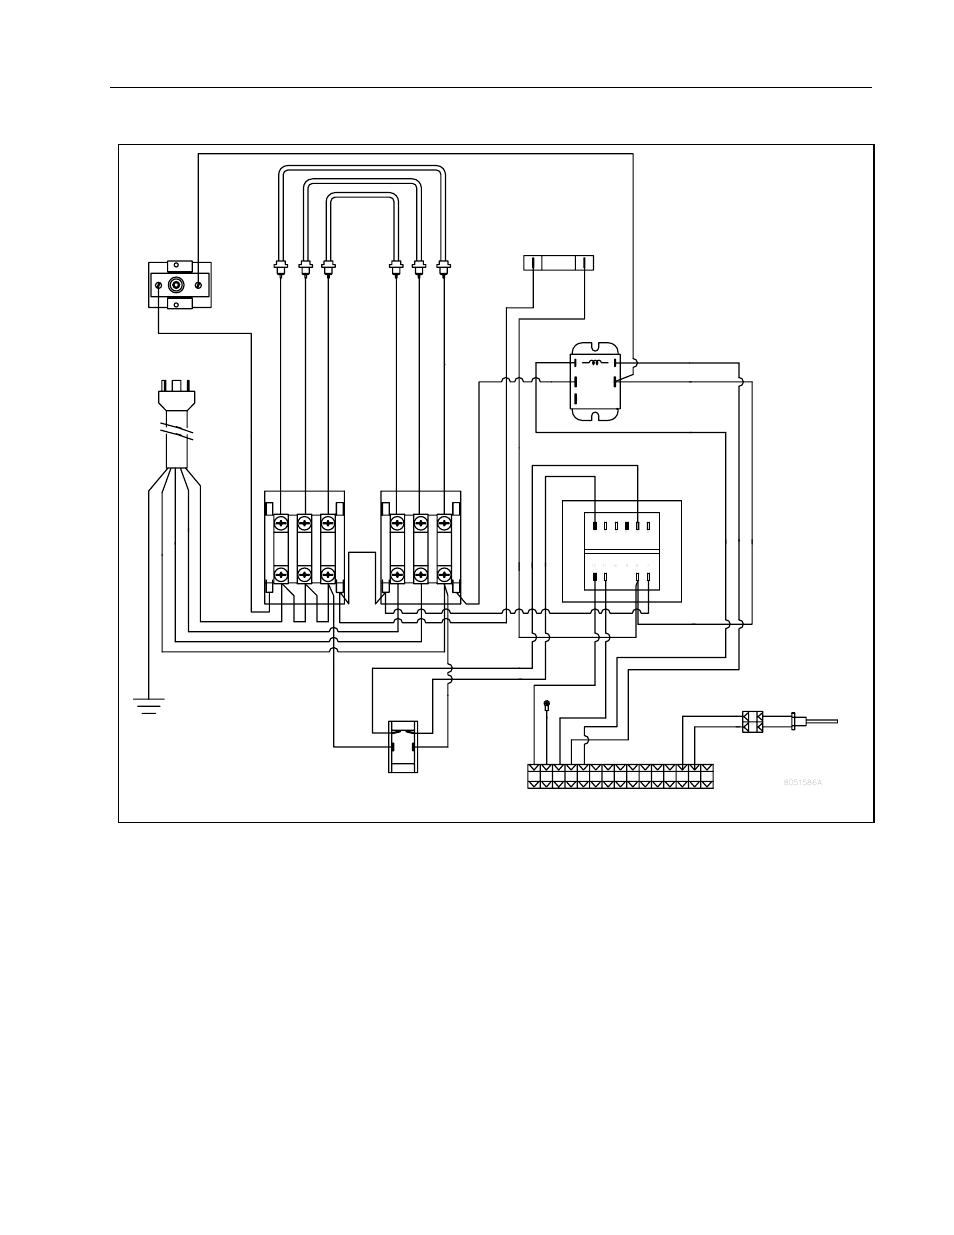 hight resolution of frymaster gas fryer wiring diagram wiring diagram valfrymaster wiring diagram my wiring diagram frymaster gas fryer